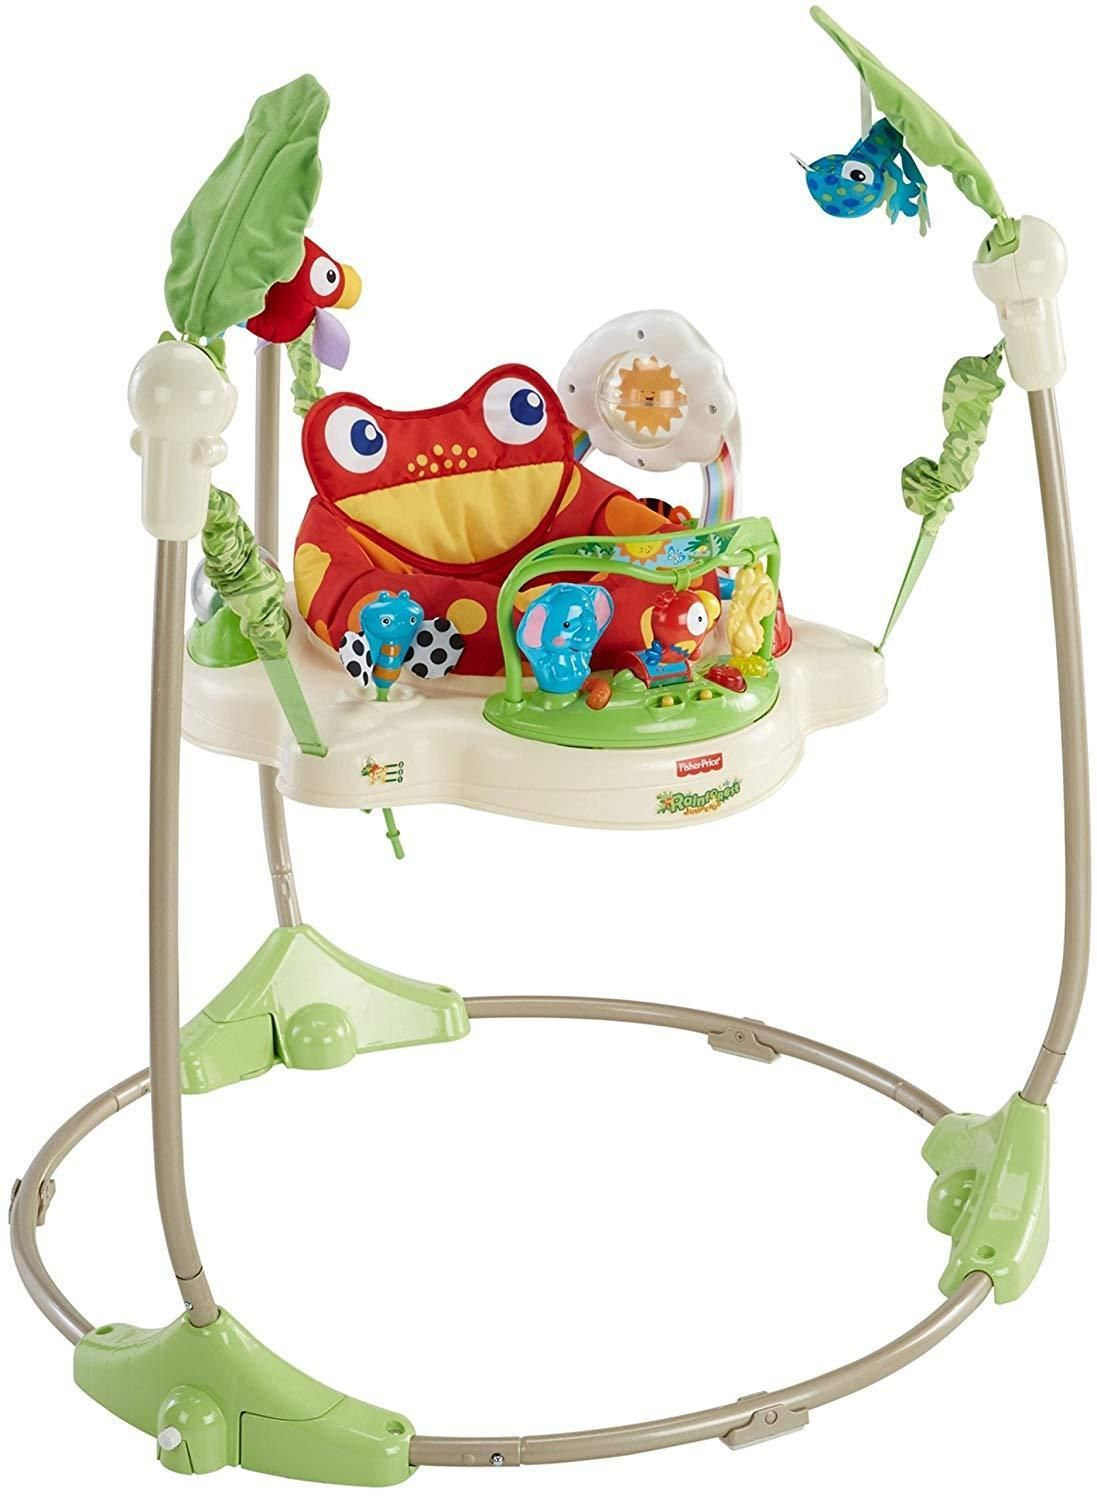 fc9c34f5f Details about Fisher Price Rainforest Jumperoo Baby Jumper Walker ...